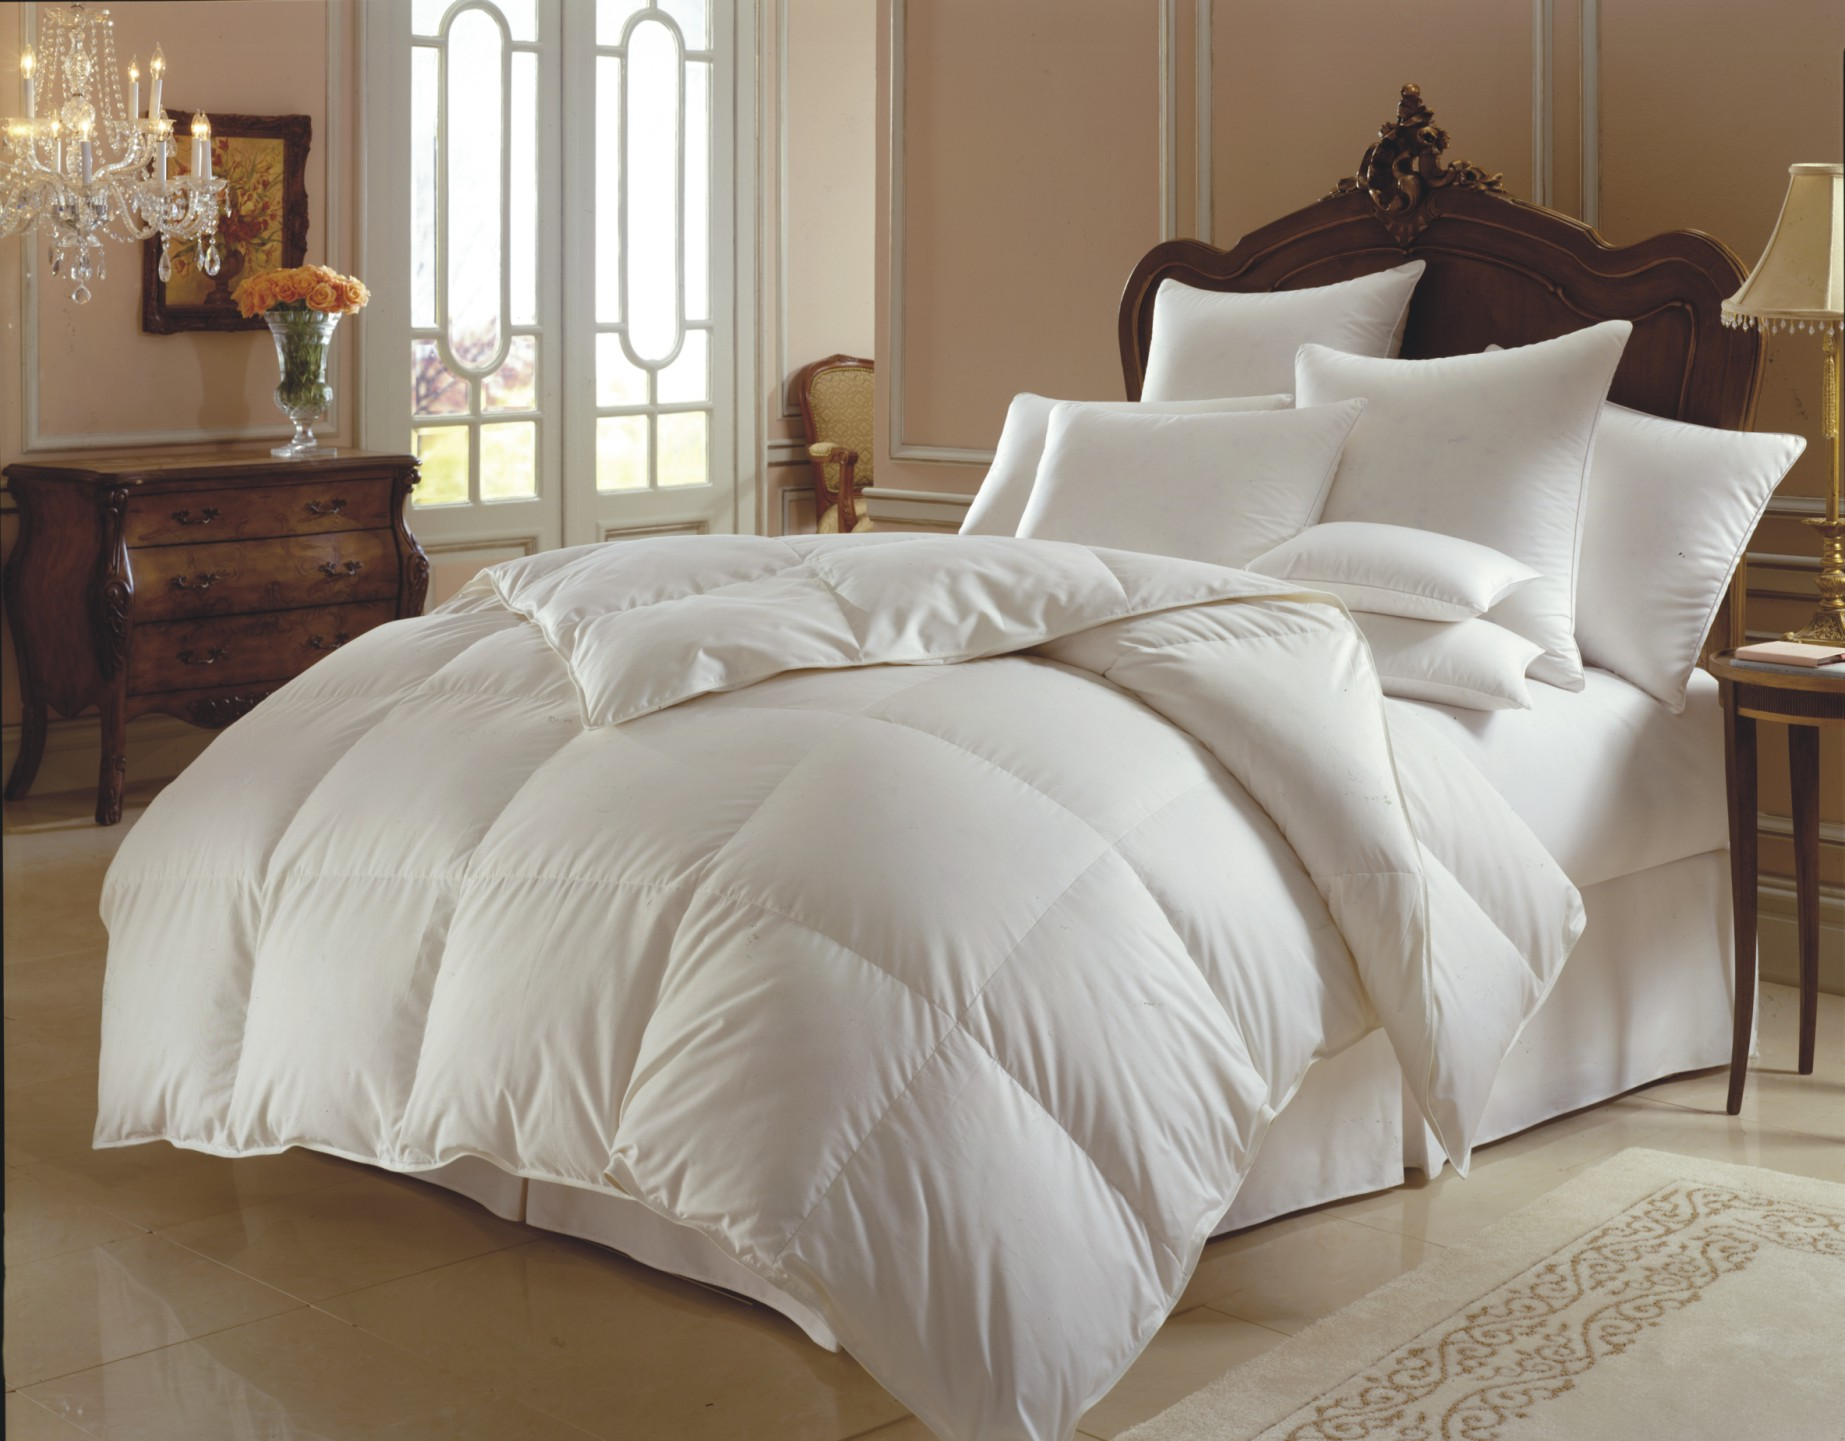 pillows size all lightweight comforters hungarian to goose royal blankets blue duvet set power head fill store withs cheap sale blanket best buy alternative of core quilts place navy siberian tog comforter king colored pillow green down duvets comfy full queen seasons feather white